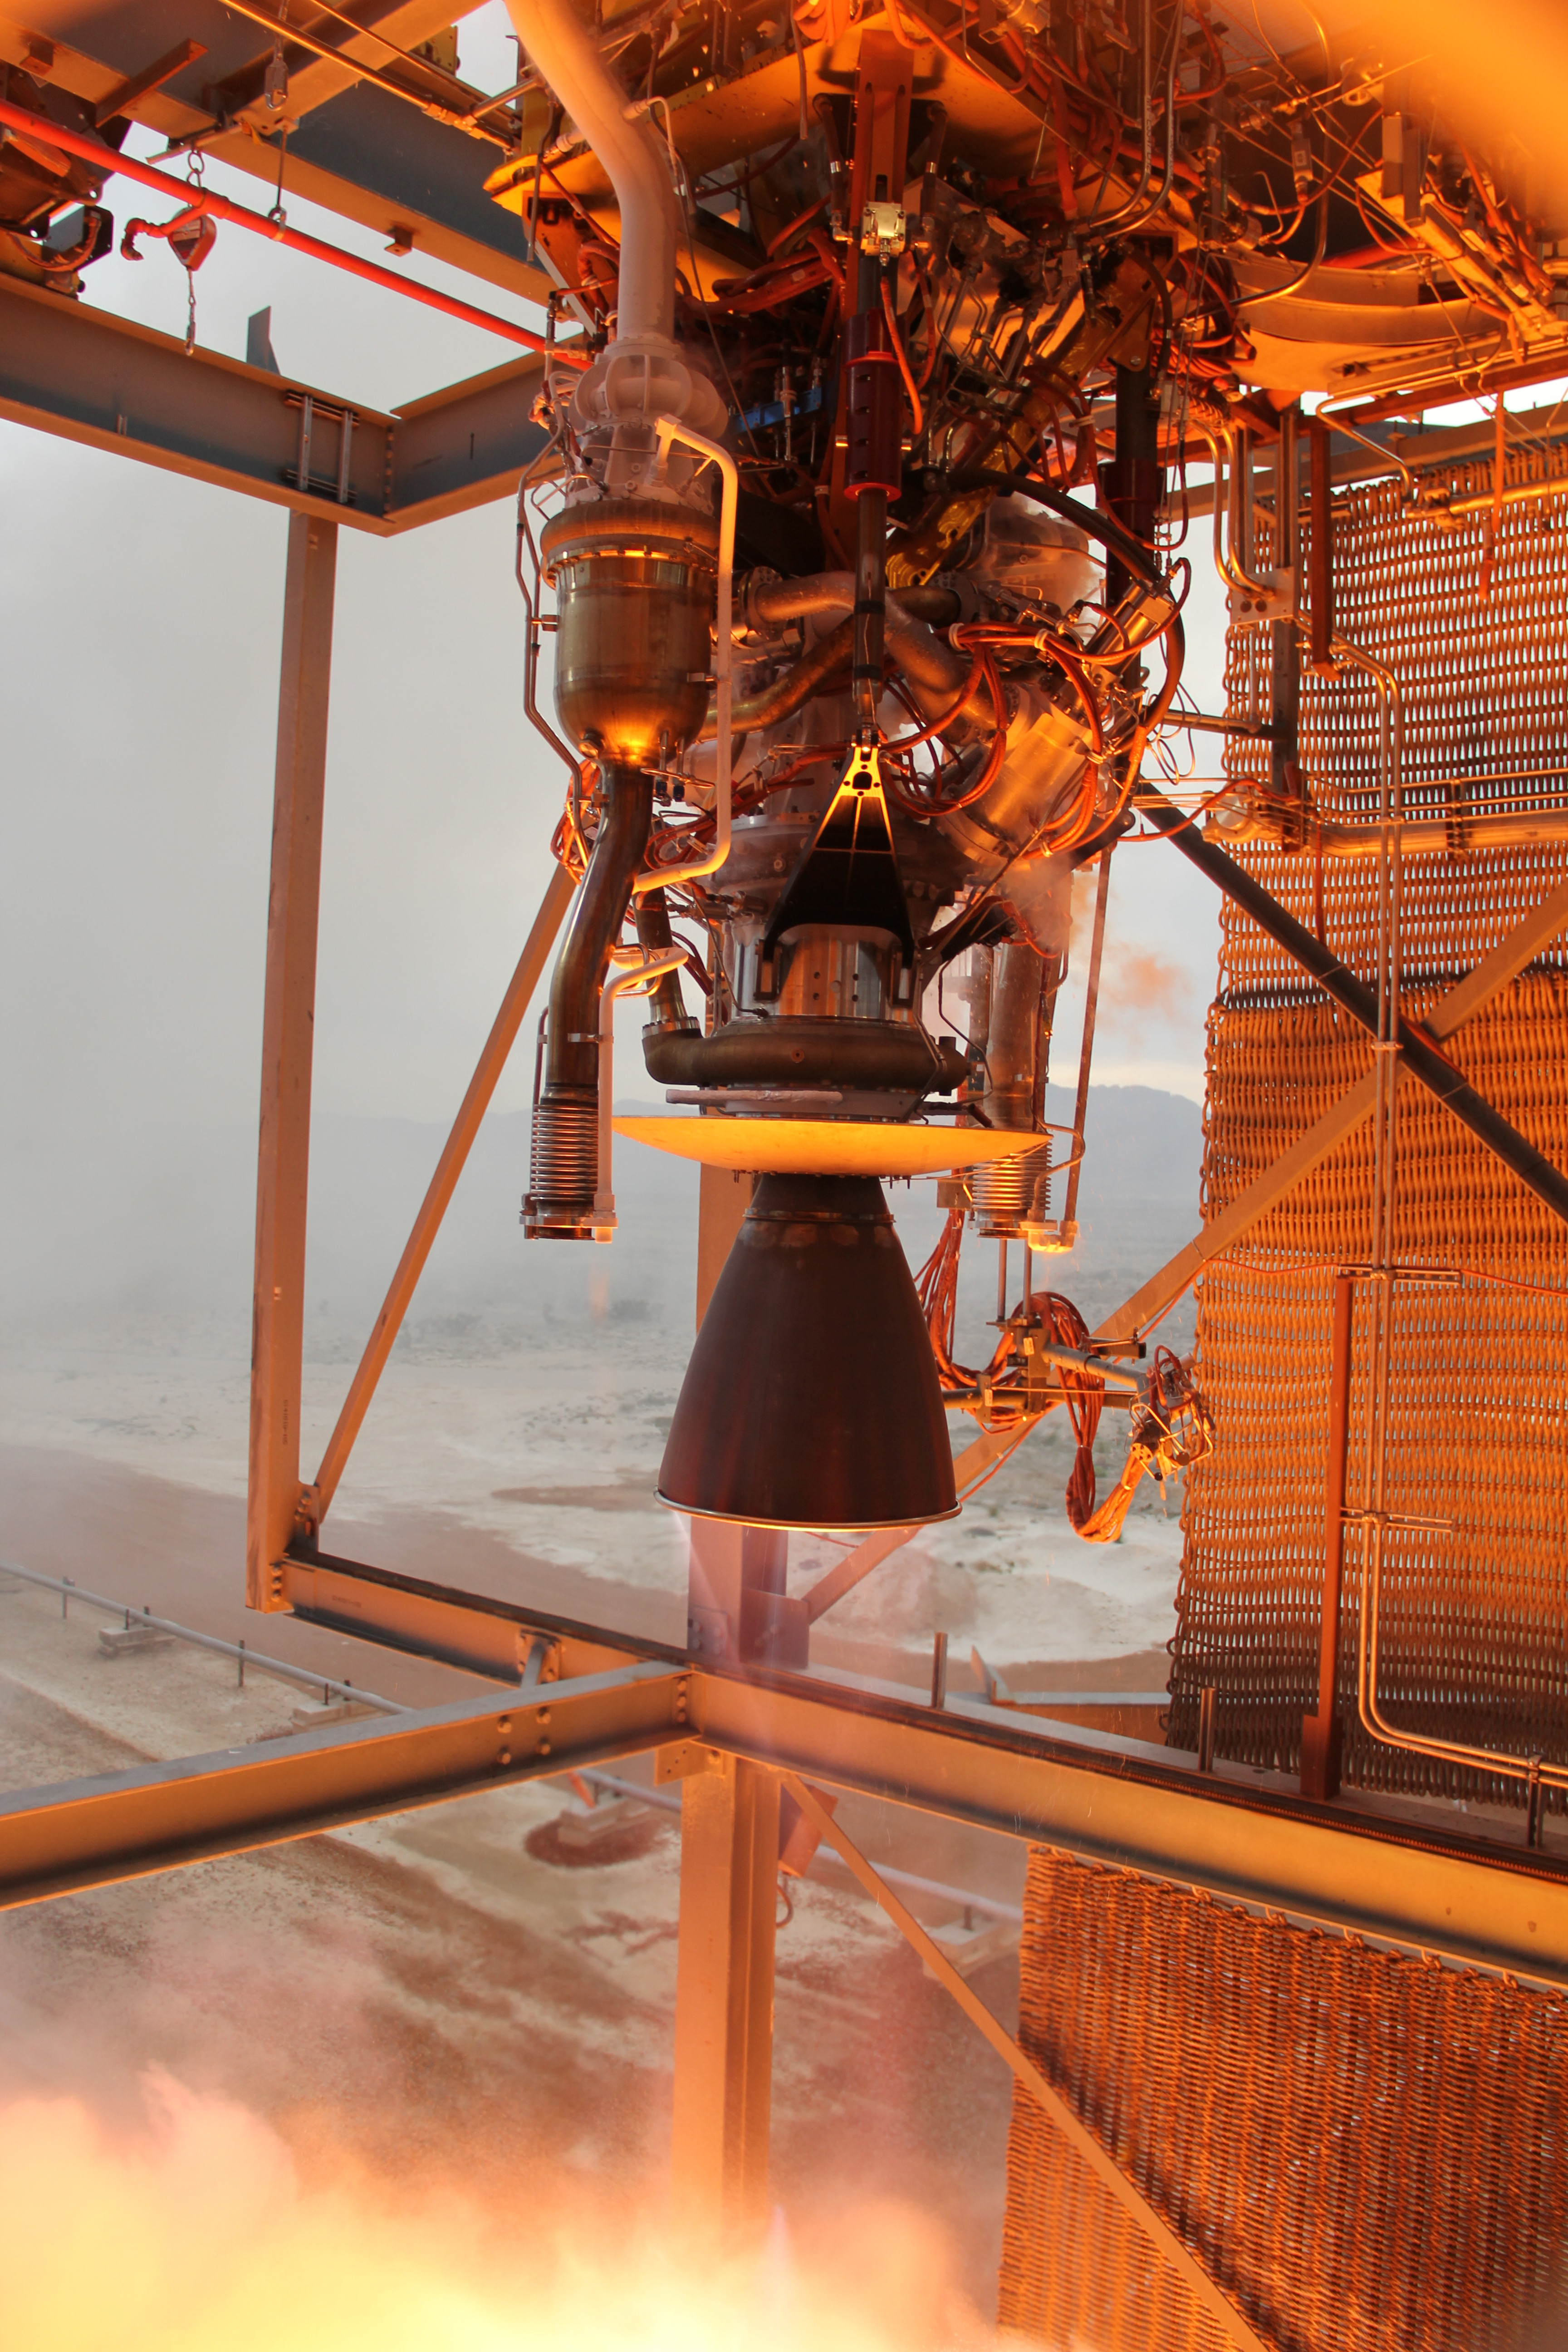 Blue Origin's BE-3 engine throttles to its maximum 110,000-lbf thrust during acceptance testing at the company's dedicated facility in West Texas on April 7, 2015.